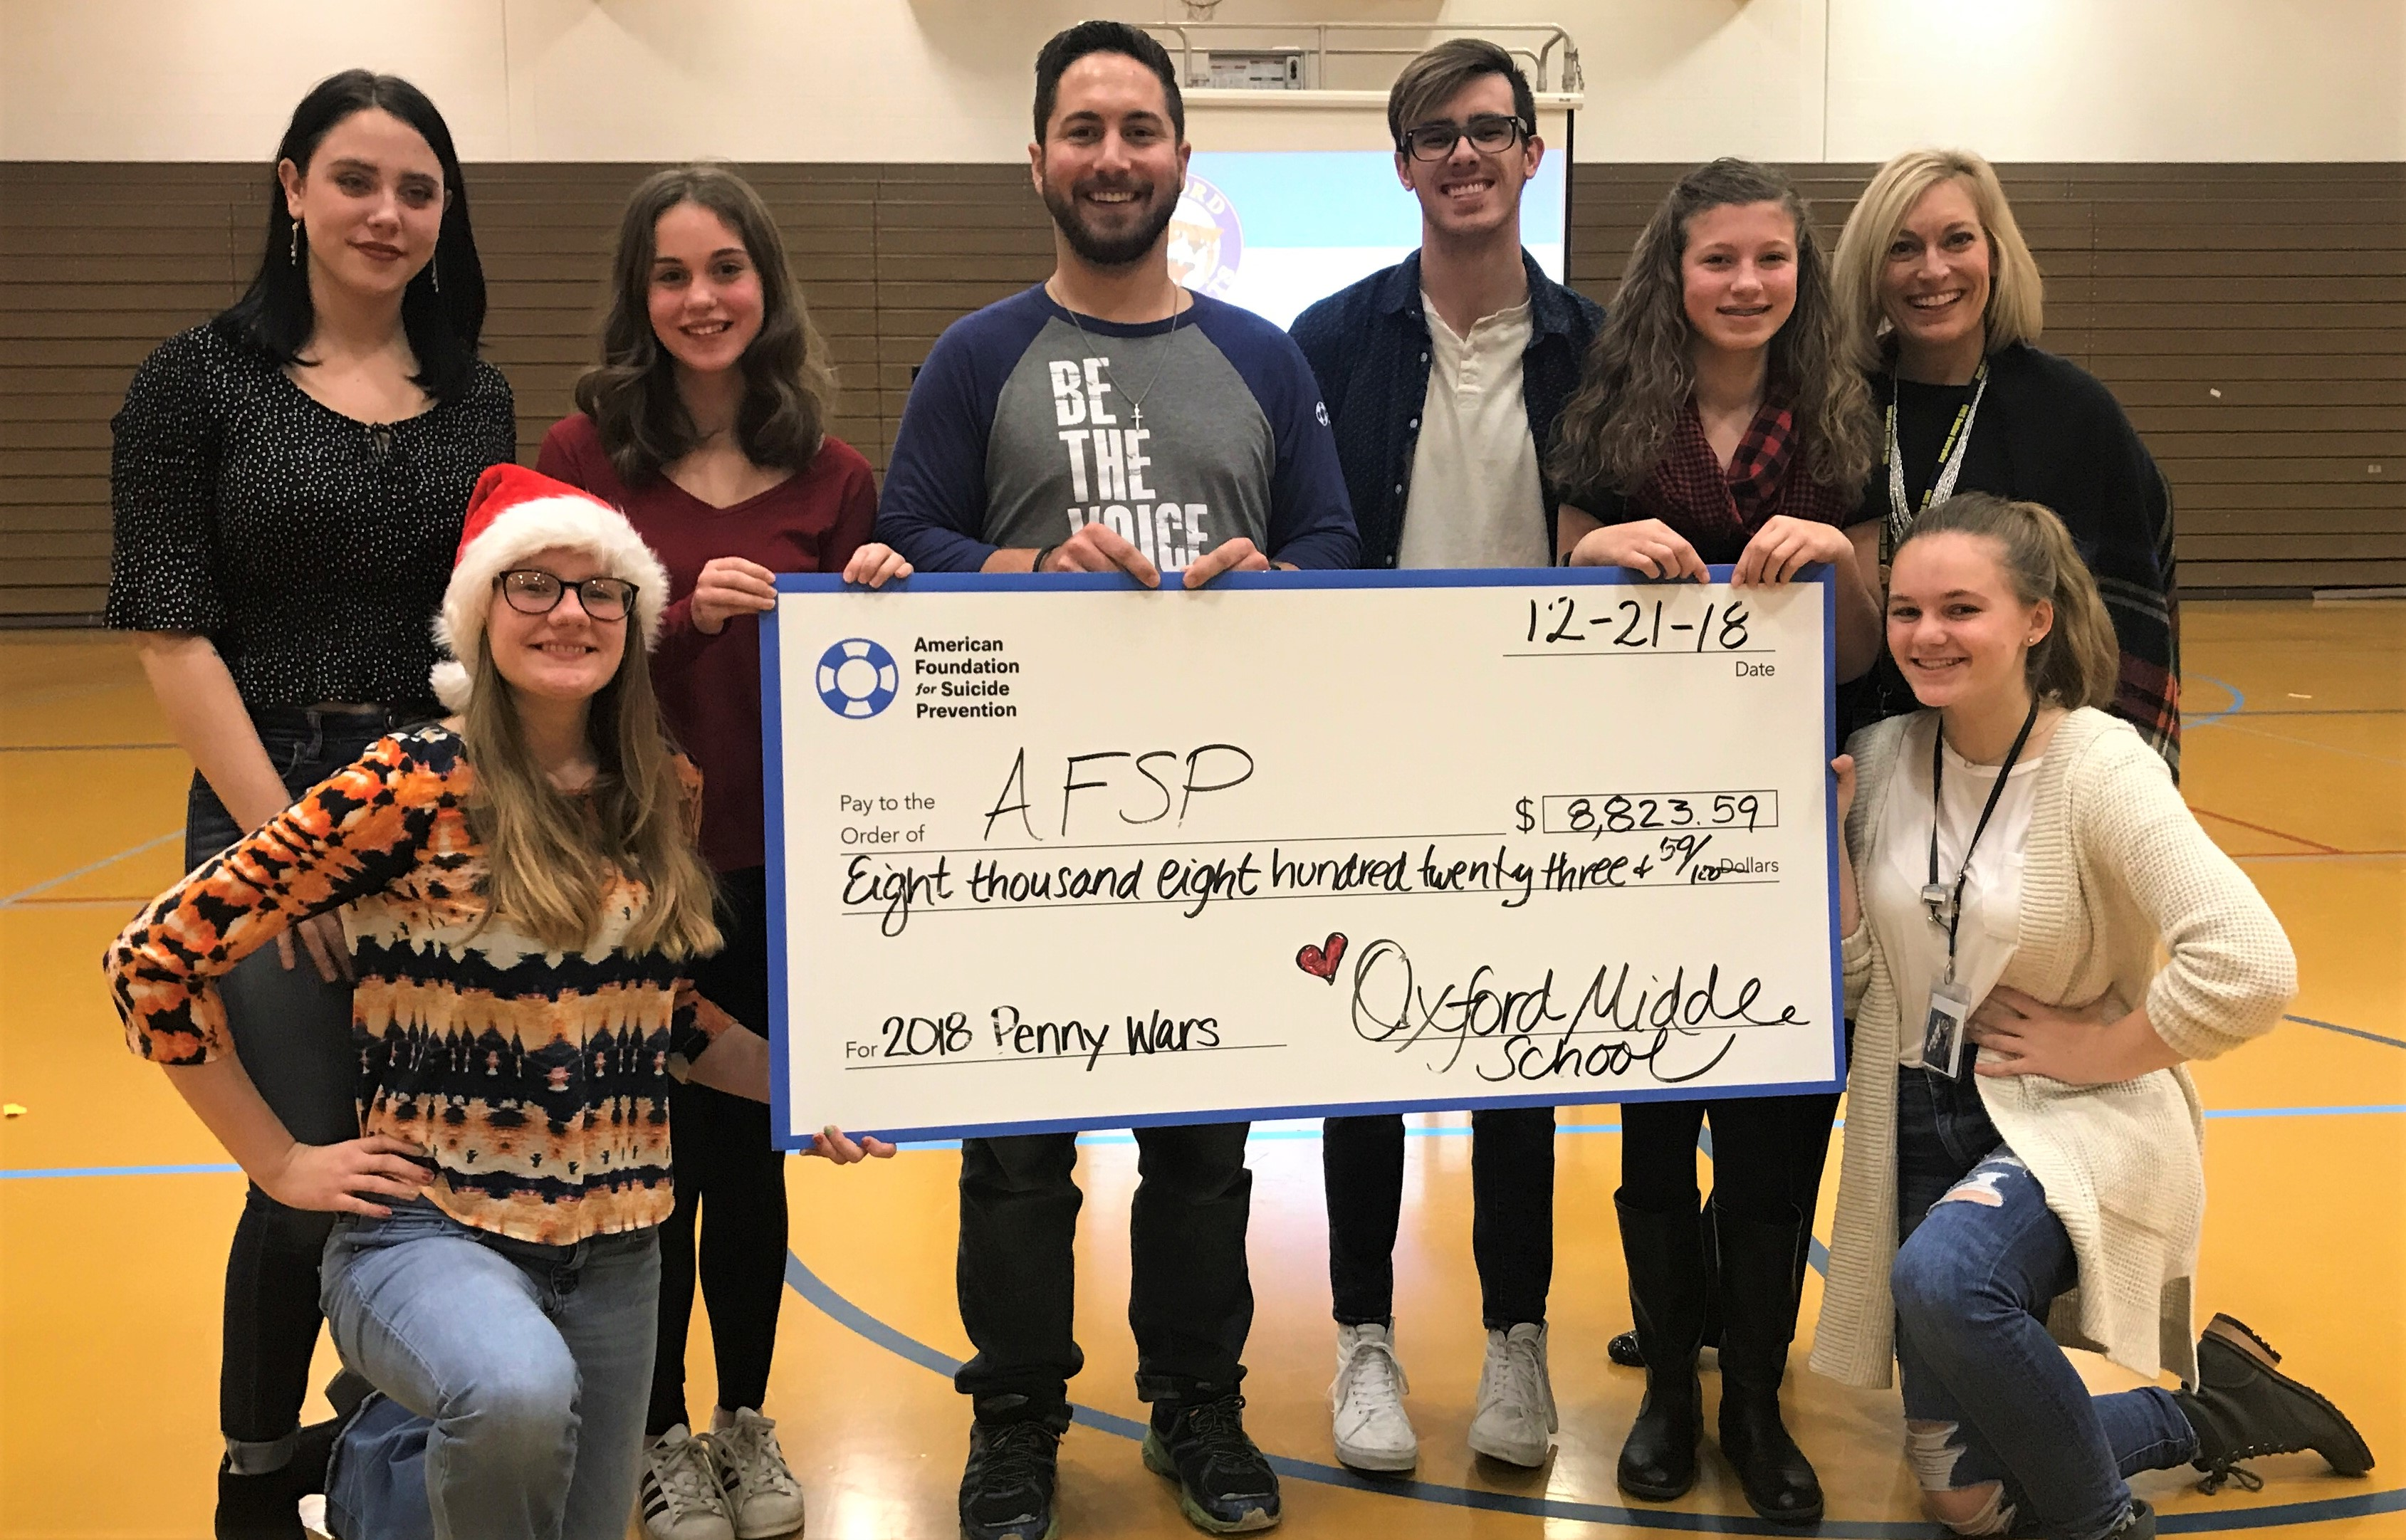 Posing with the $8,800 check is Ava Gordon (front, from left) and Aubrey Greenfield. In the back is OHS graduate Riley Juntti (from left), Allison Ried, AFSP representative Steve Windom, OHS graduate Dylan Koss, Taylor Reid, Allison Reid and OMS Principal Dacia Beazley. Photo provided.